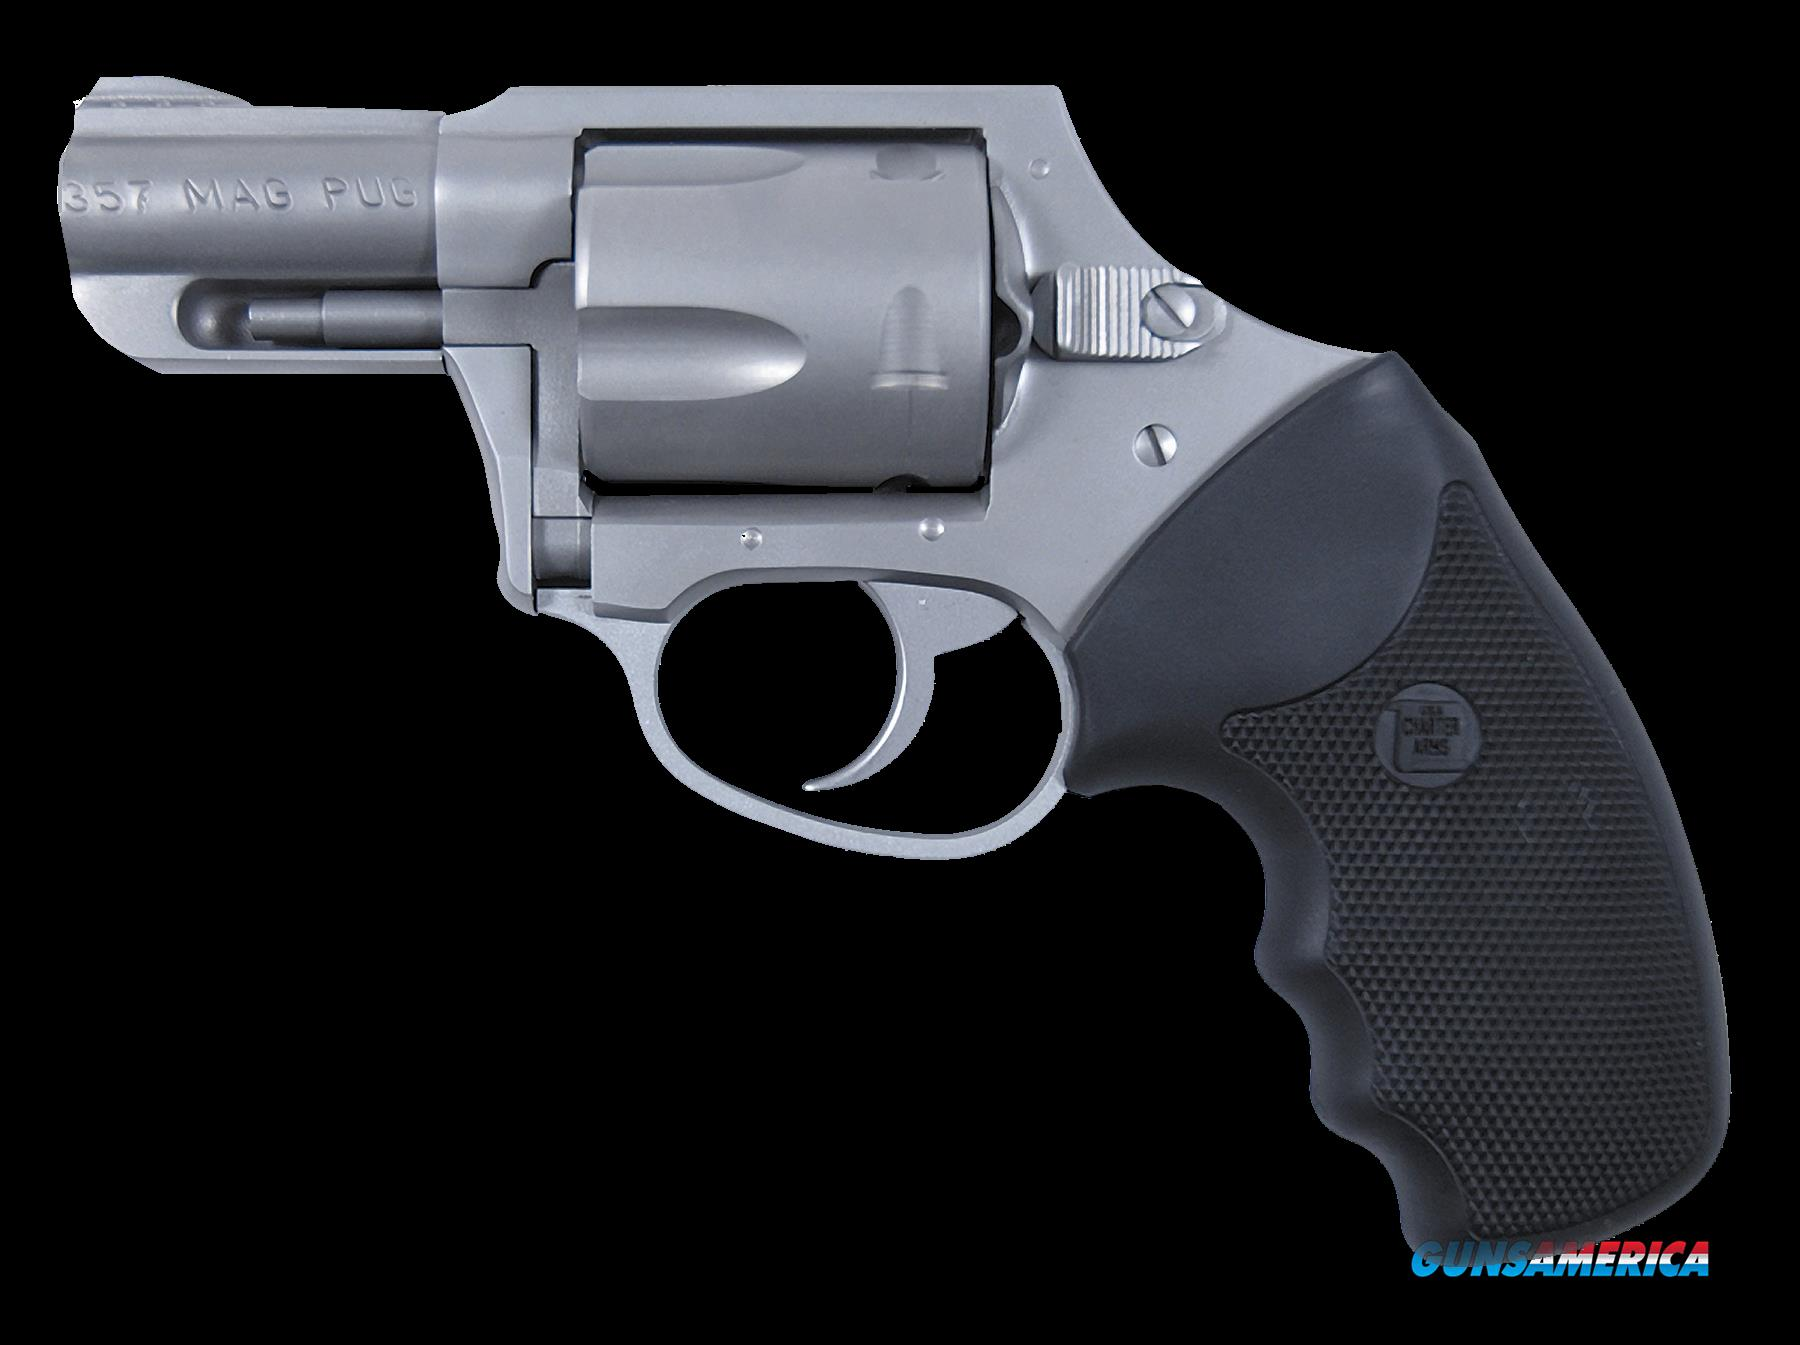 "Charter Arms 73521 Mag Pug Double Action Only  357 Magnum 2.2"" 5 Black Rubber Stainless  Guns > Pistols > Charter Arms Revolvers"